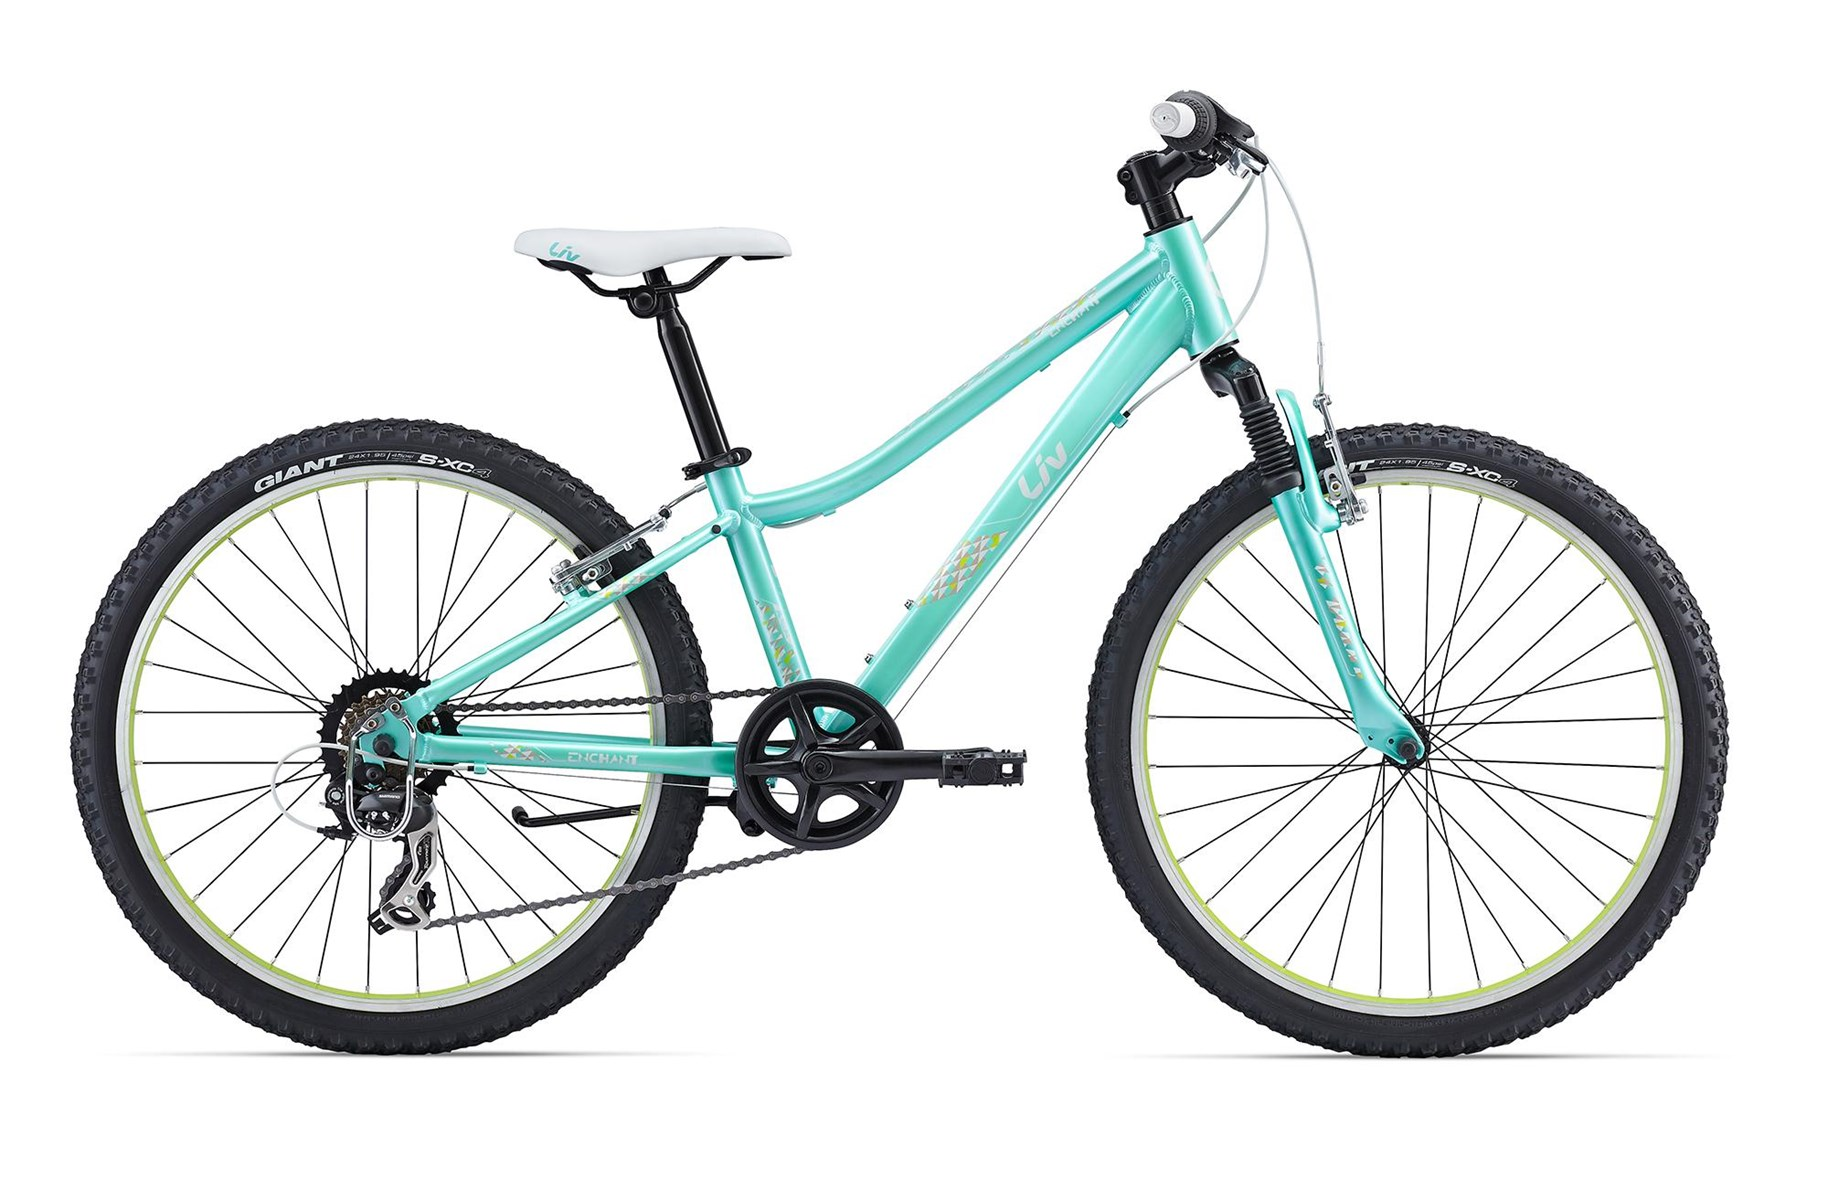 Giant Enchant 24 Inch 2016 Bike Green £249.00